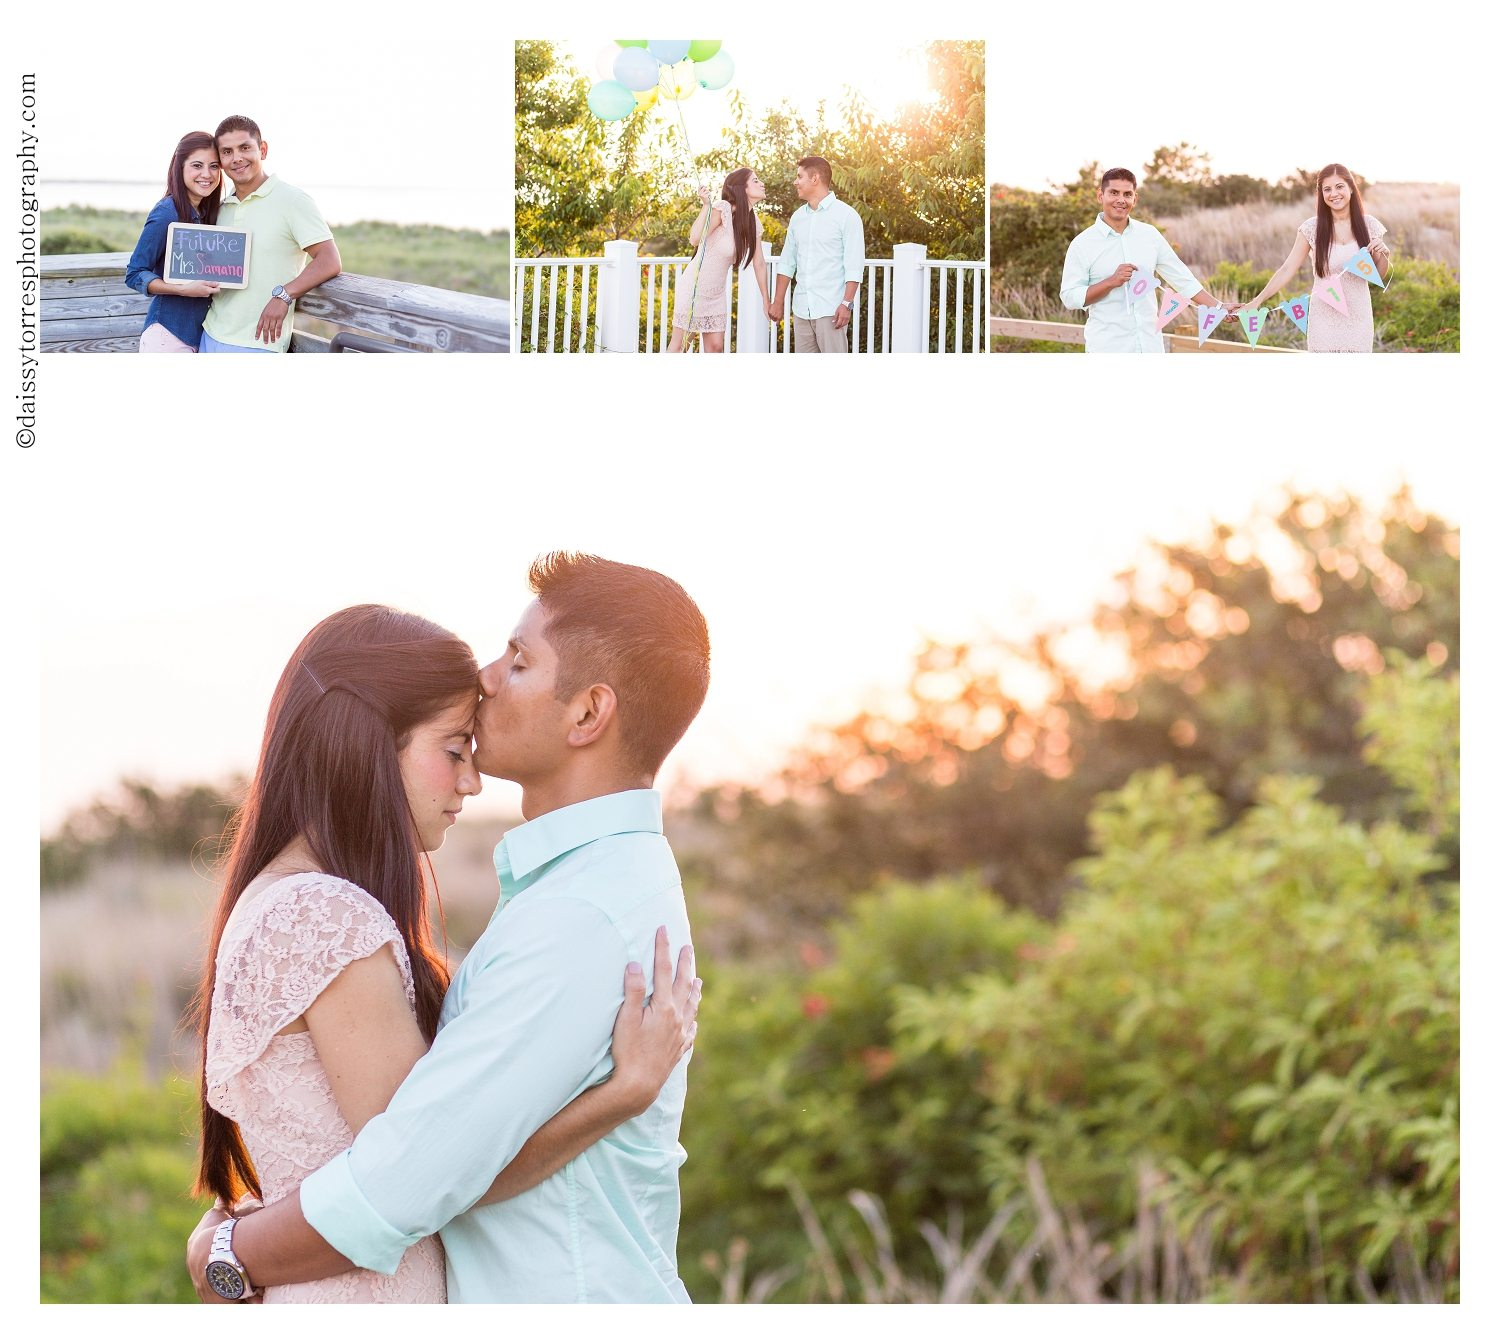 7 sure ways to make your engagement photos suck 5